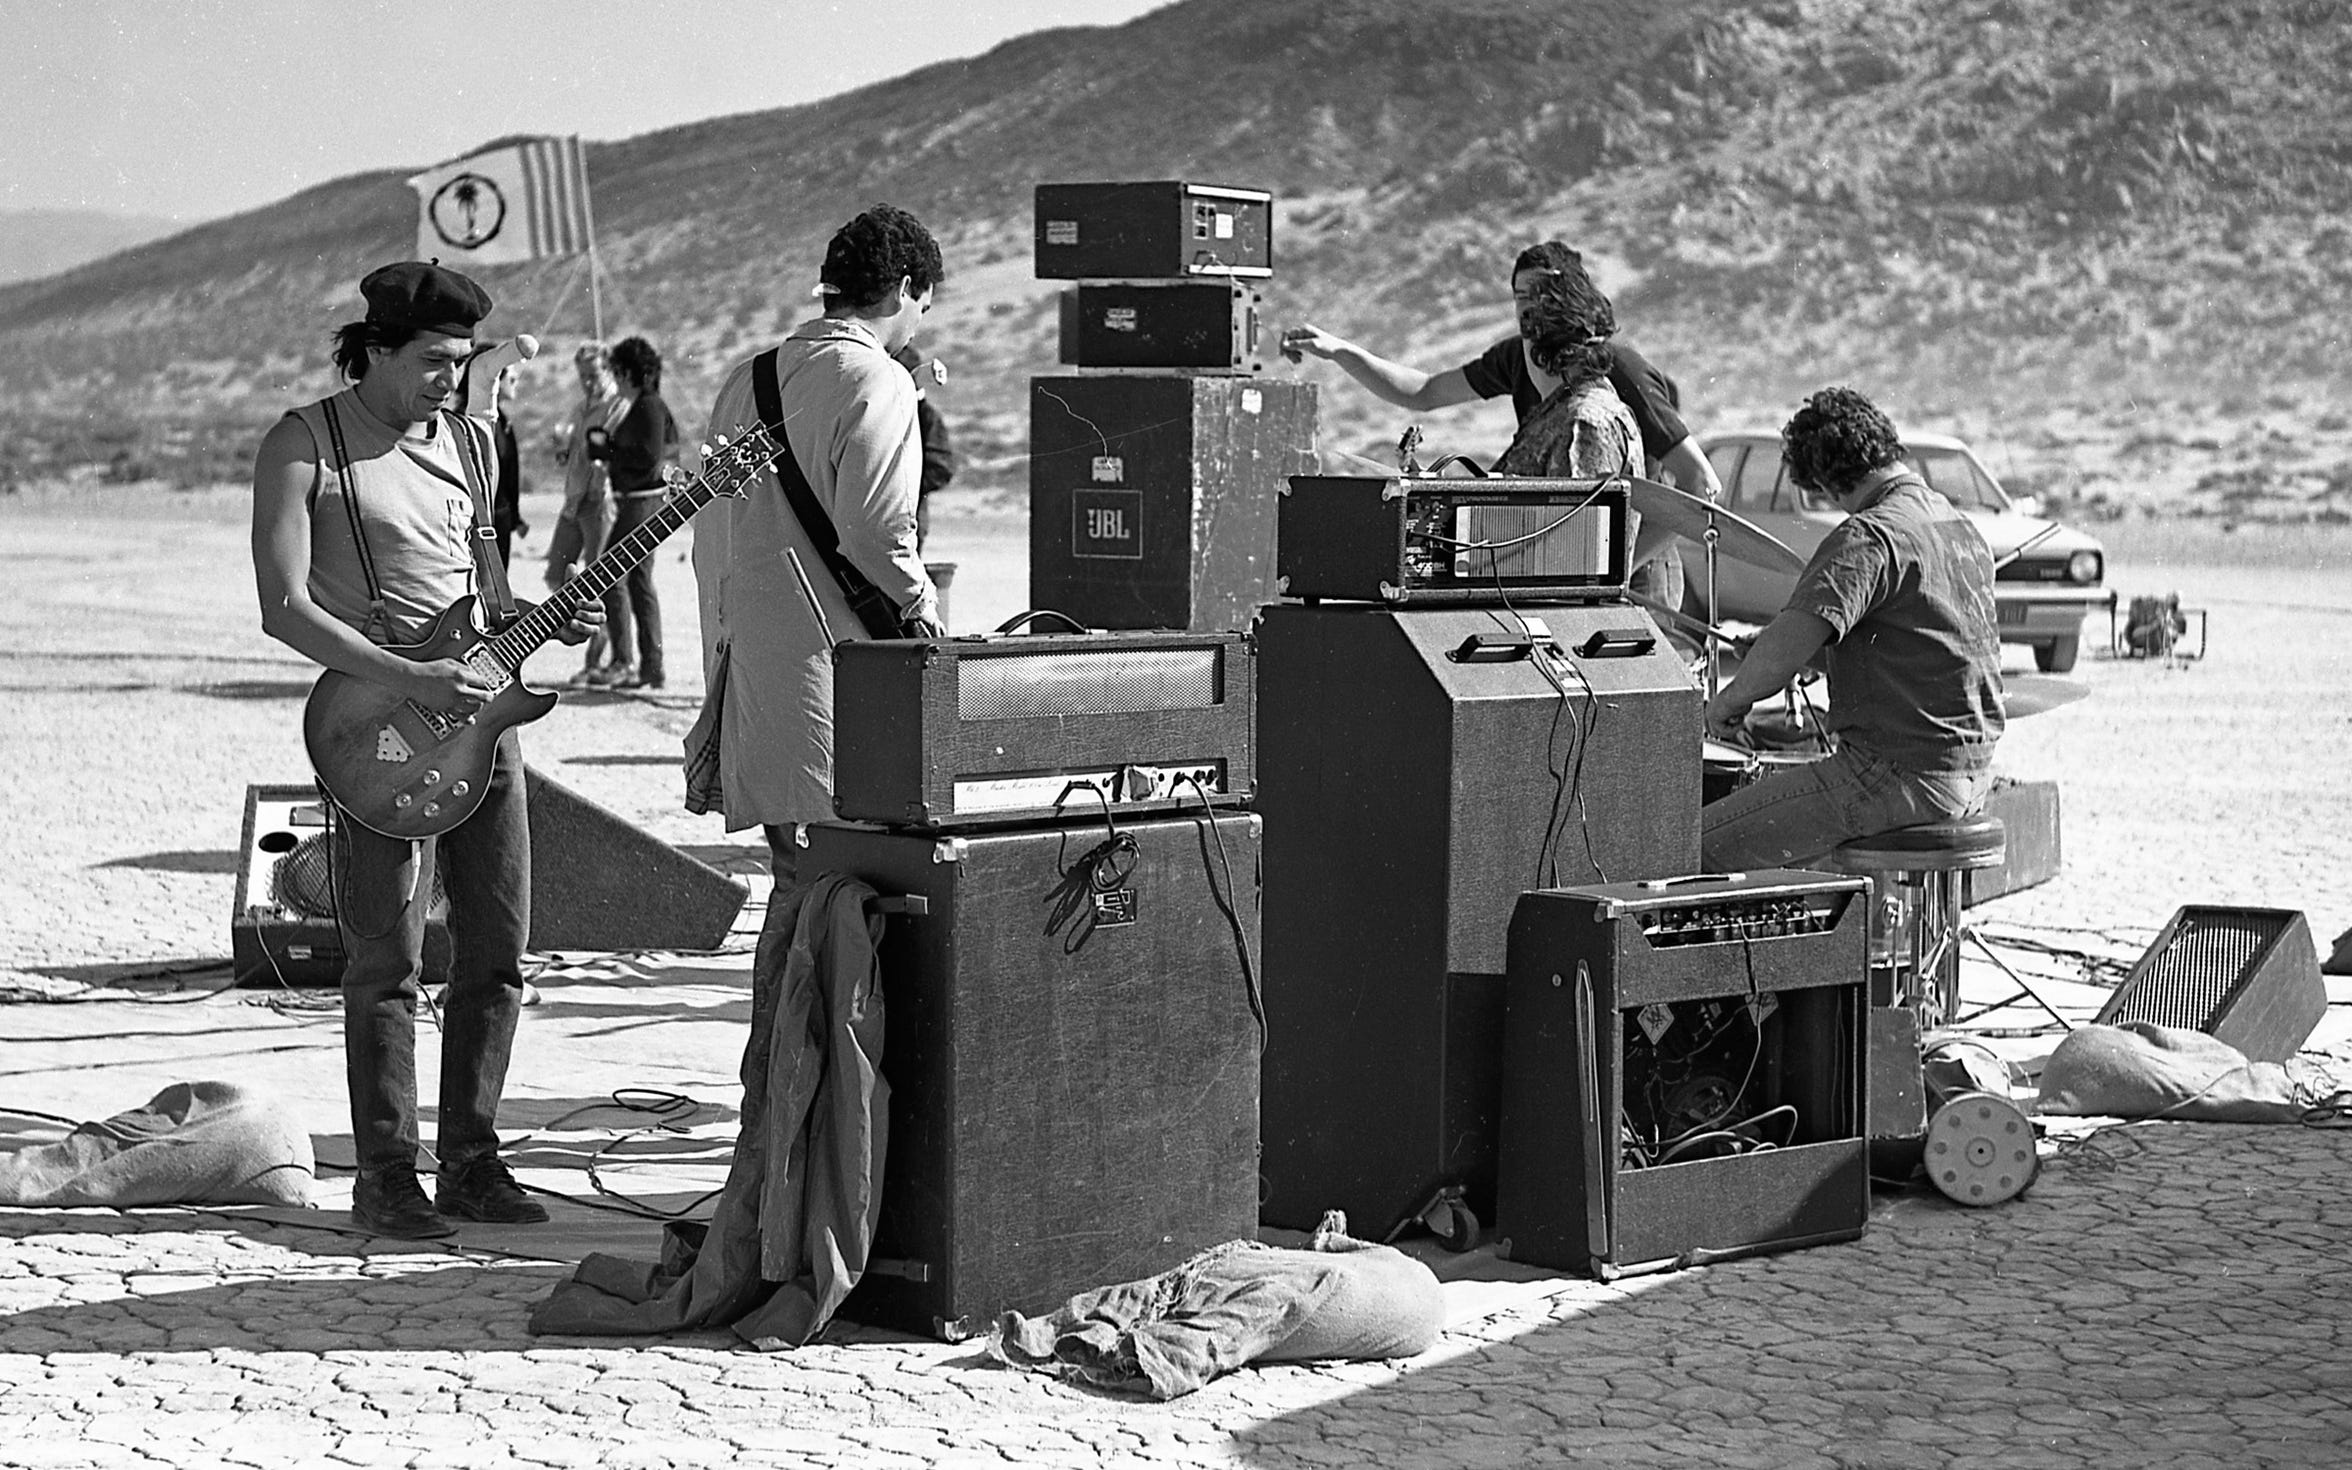 Minutemen performing at Mojave Exodus at Soggy Dry Lake in Lucerne Valley, Calif. on April 24, 1983.